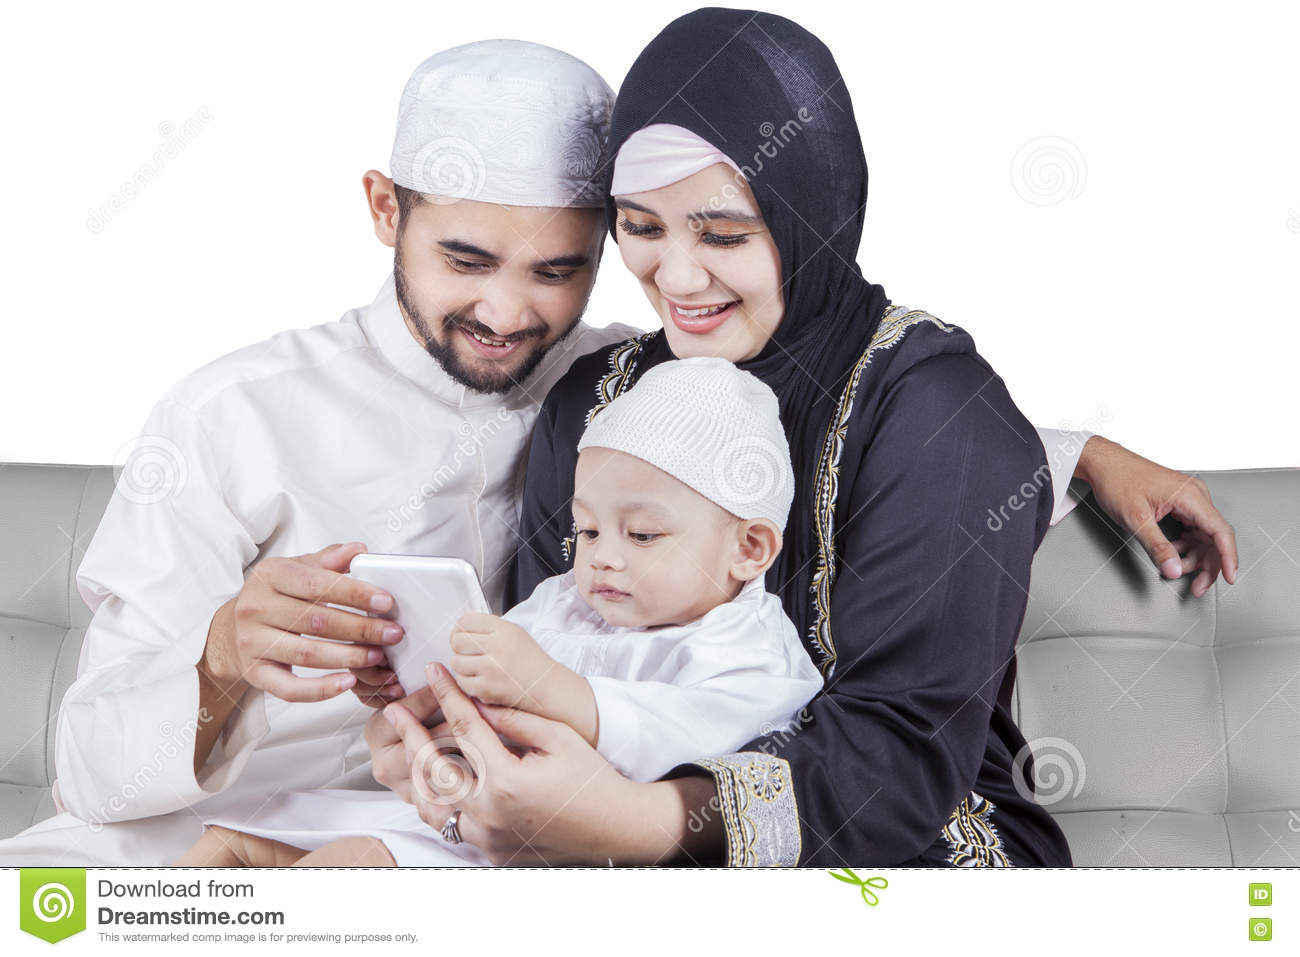 le roy muslim women dating site Heinous dealings here to disrupt your and get involved with non-muslim women than young muslim women i have been dating a muslim man ten years younger than.